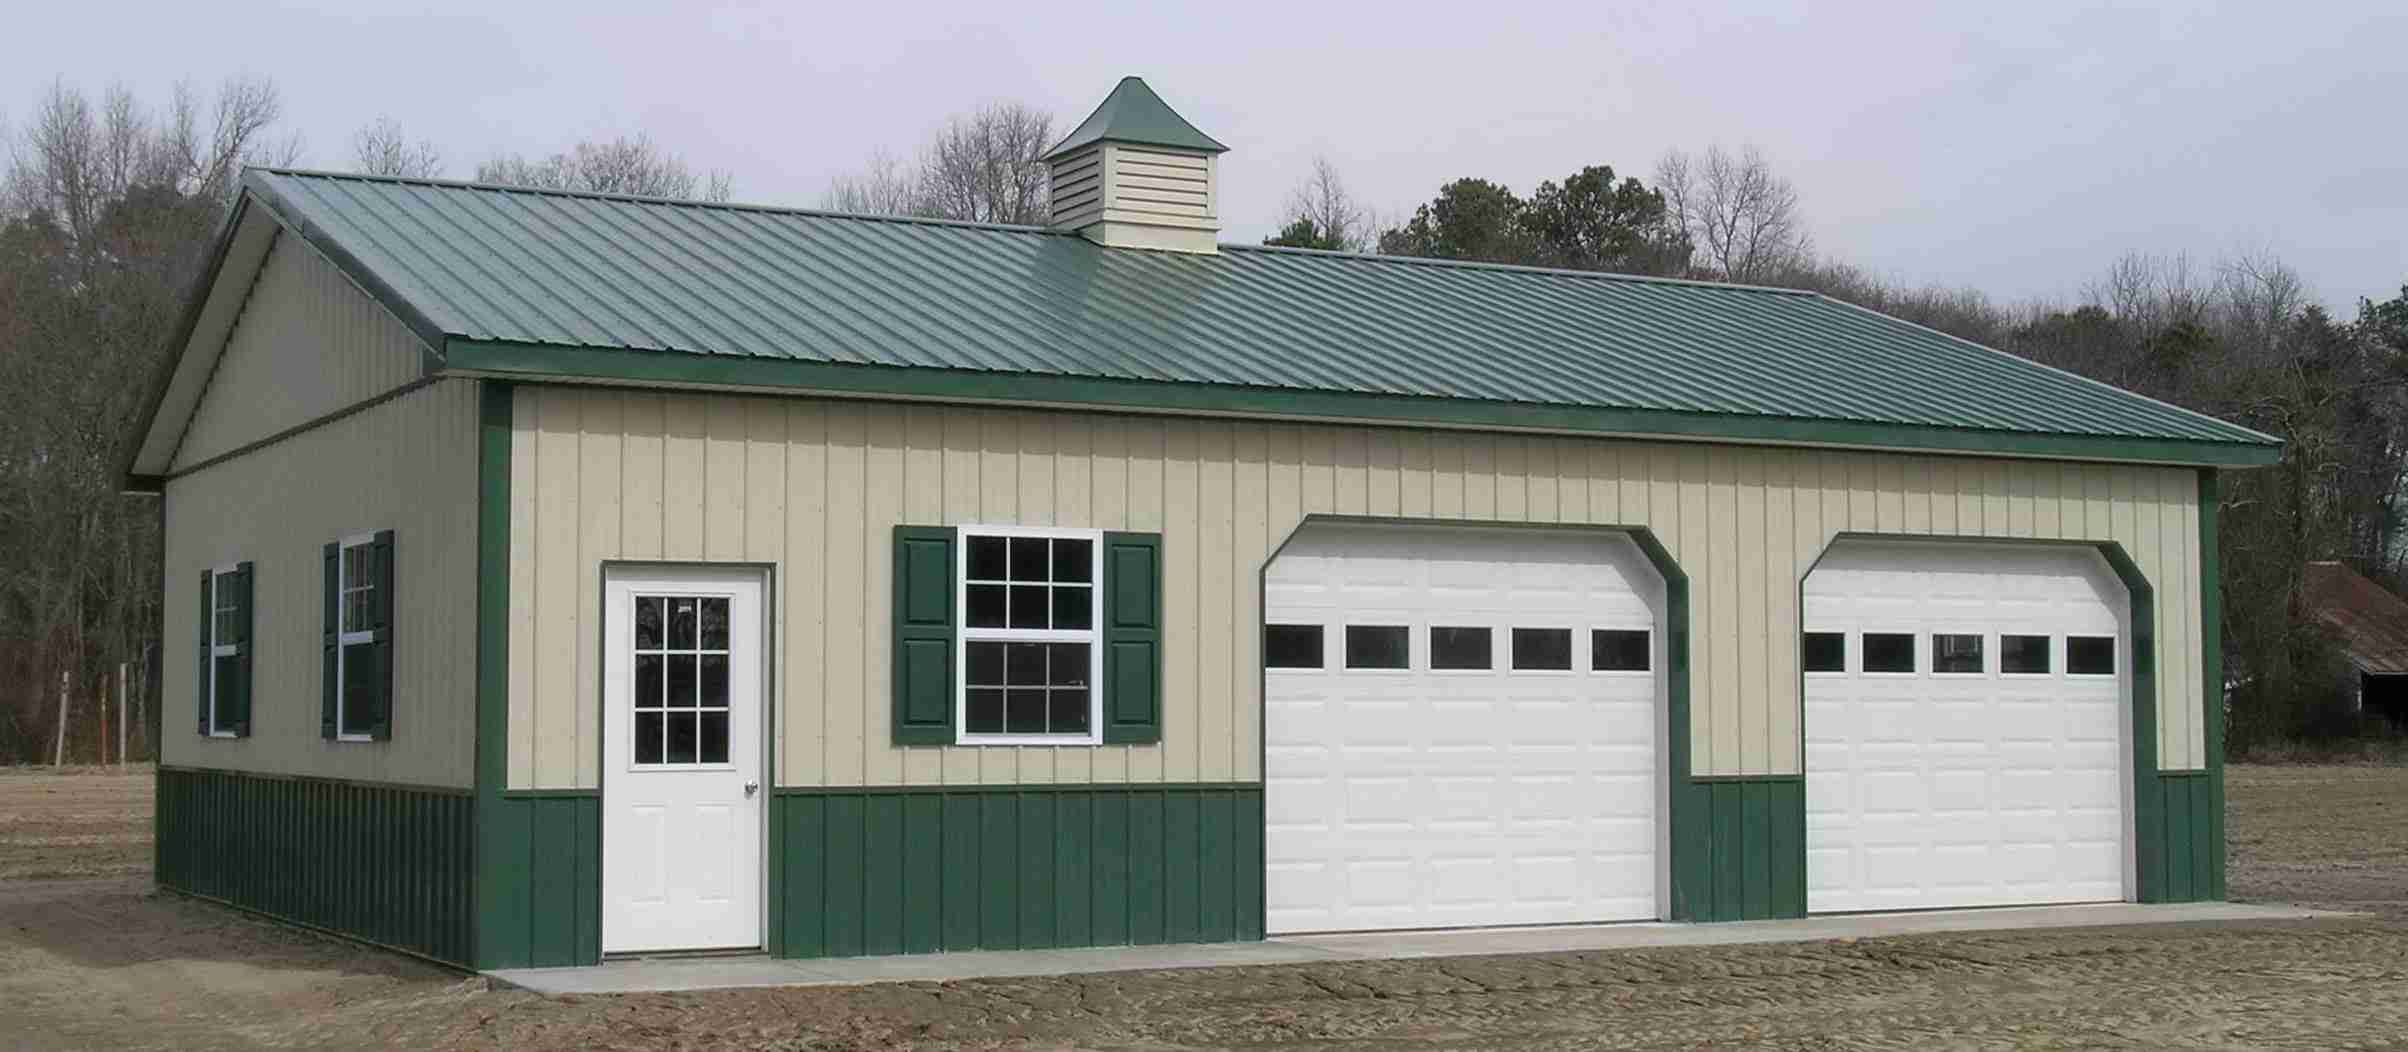 Great Pole Barn Garage Plans shed ideas Pinterest